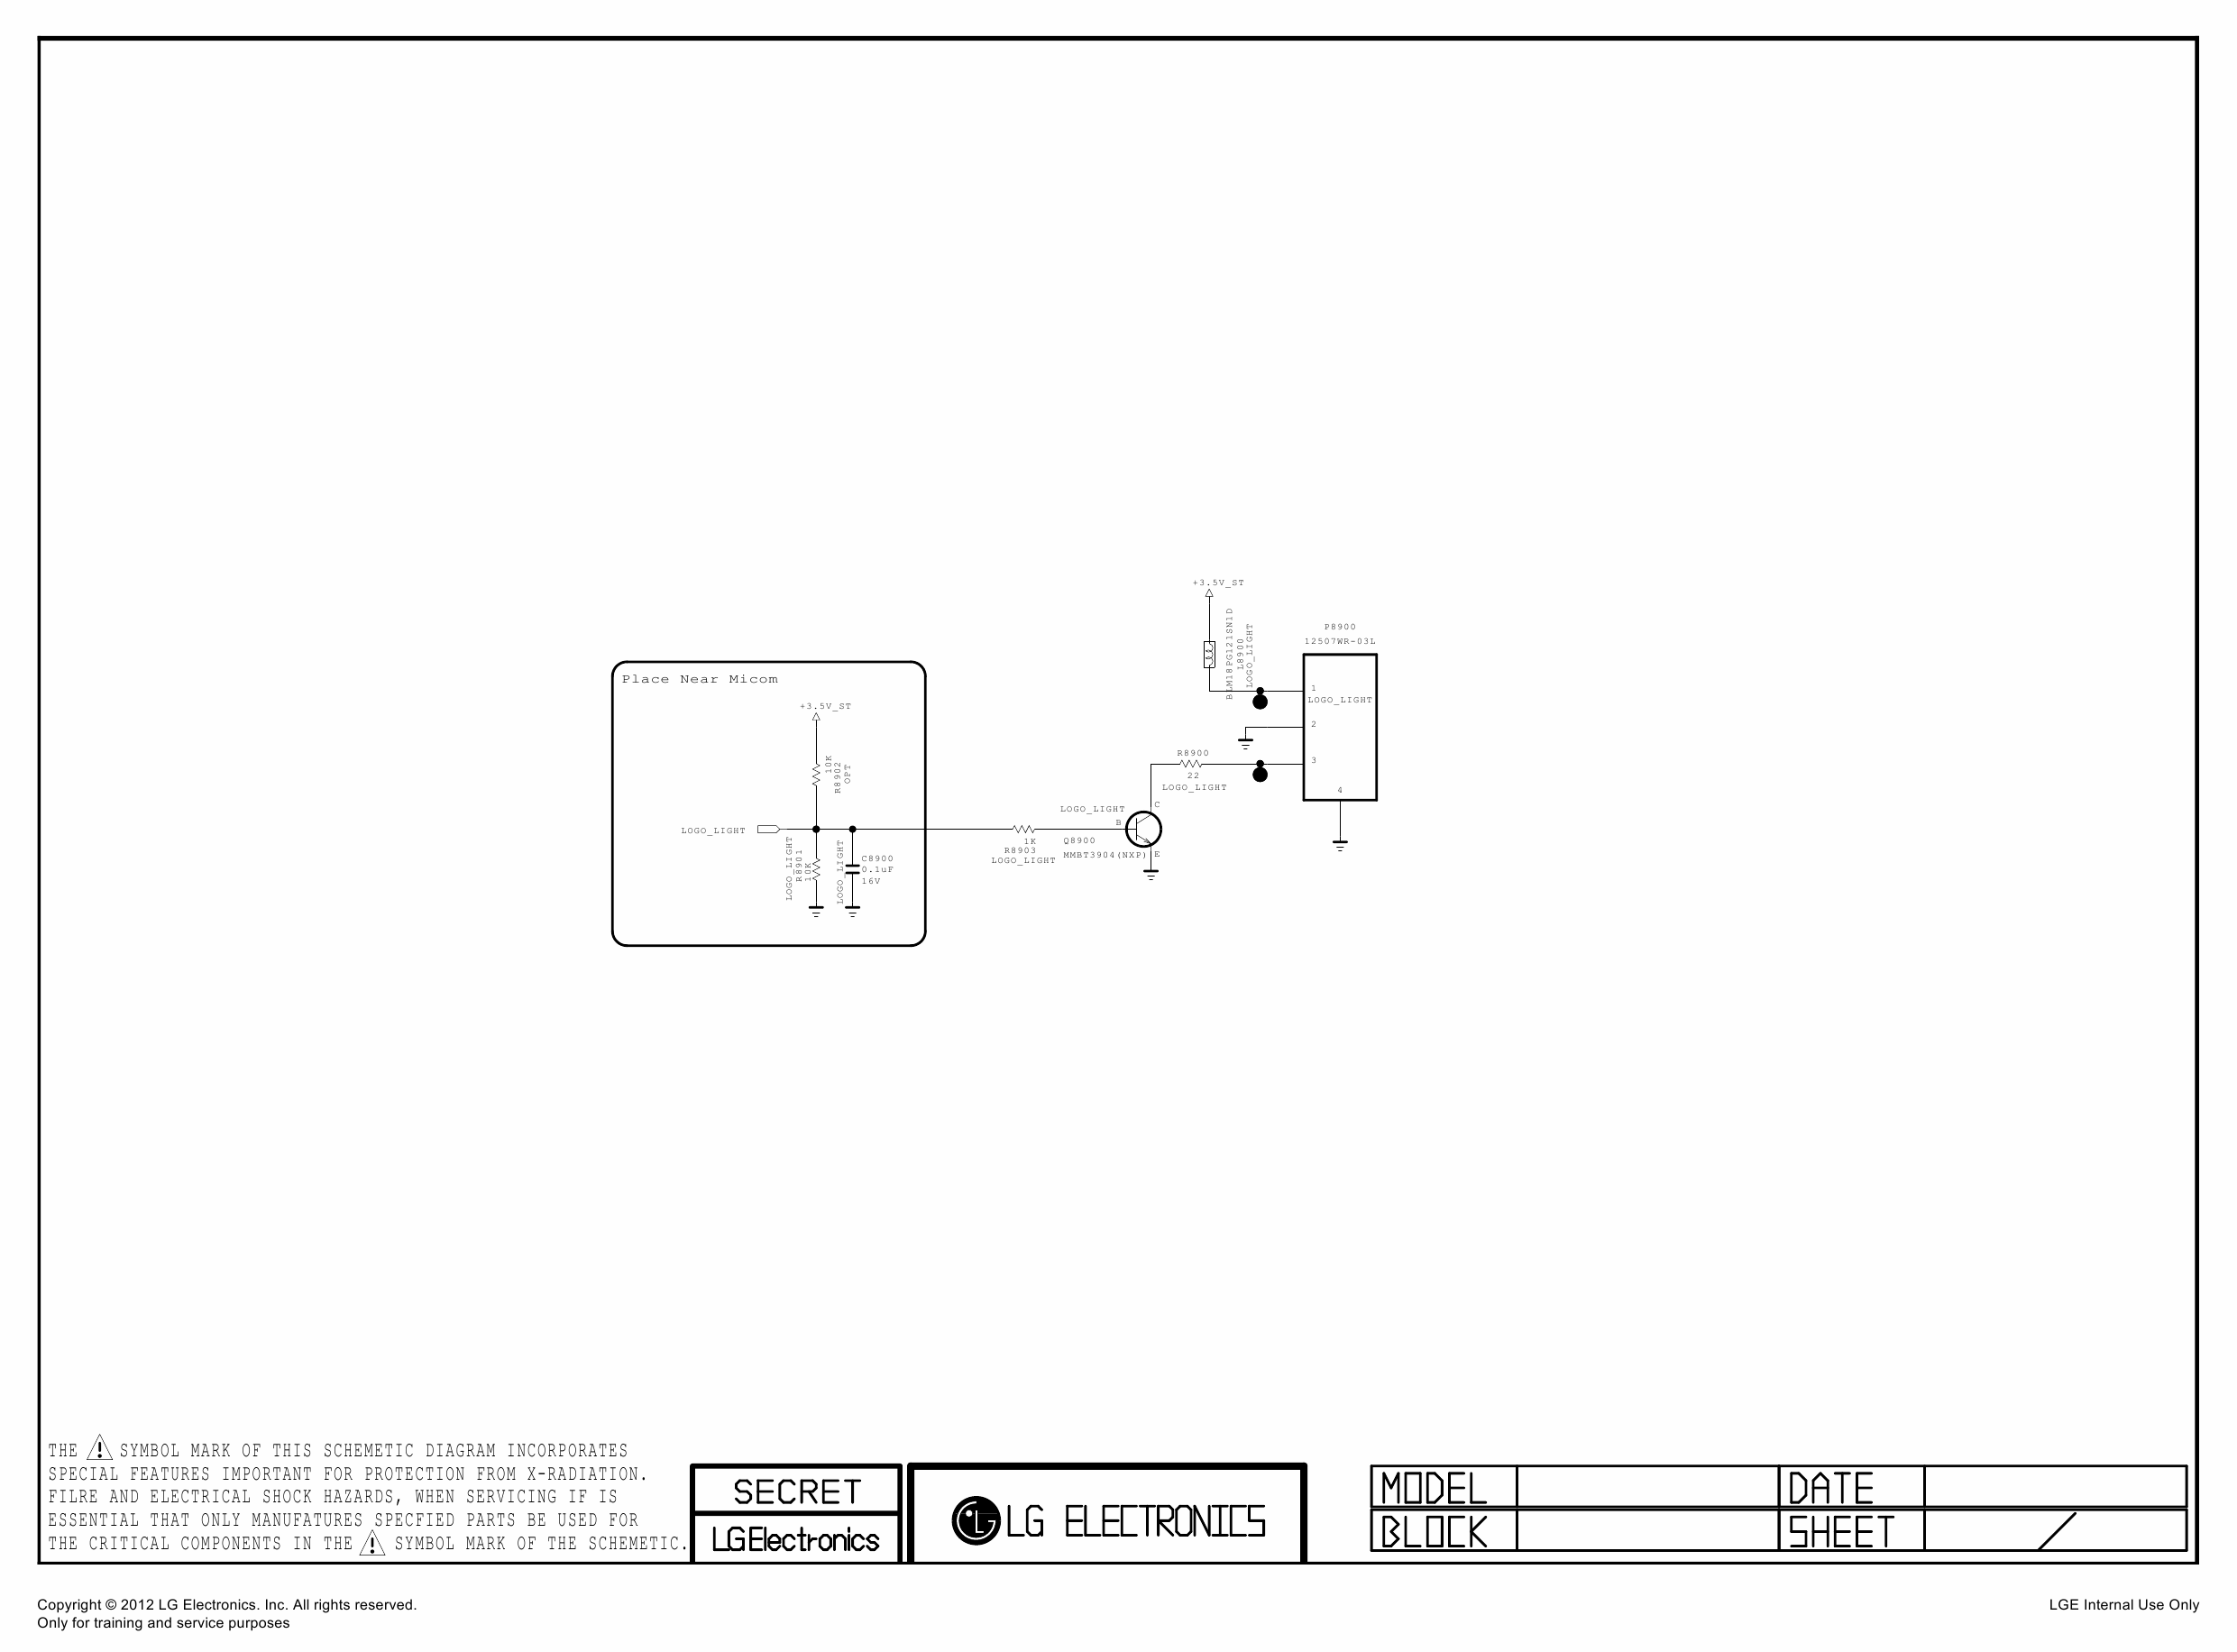 LG_LCD_TV_32LM620S_620T_Service_Manual_2012_Qmanual.com-6